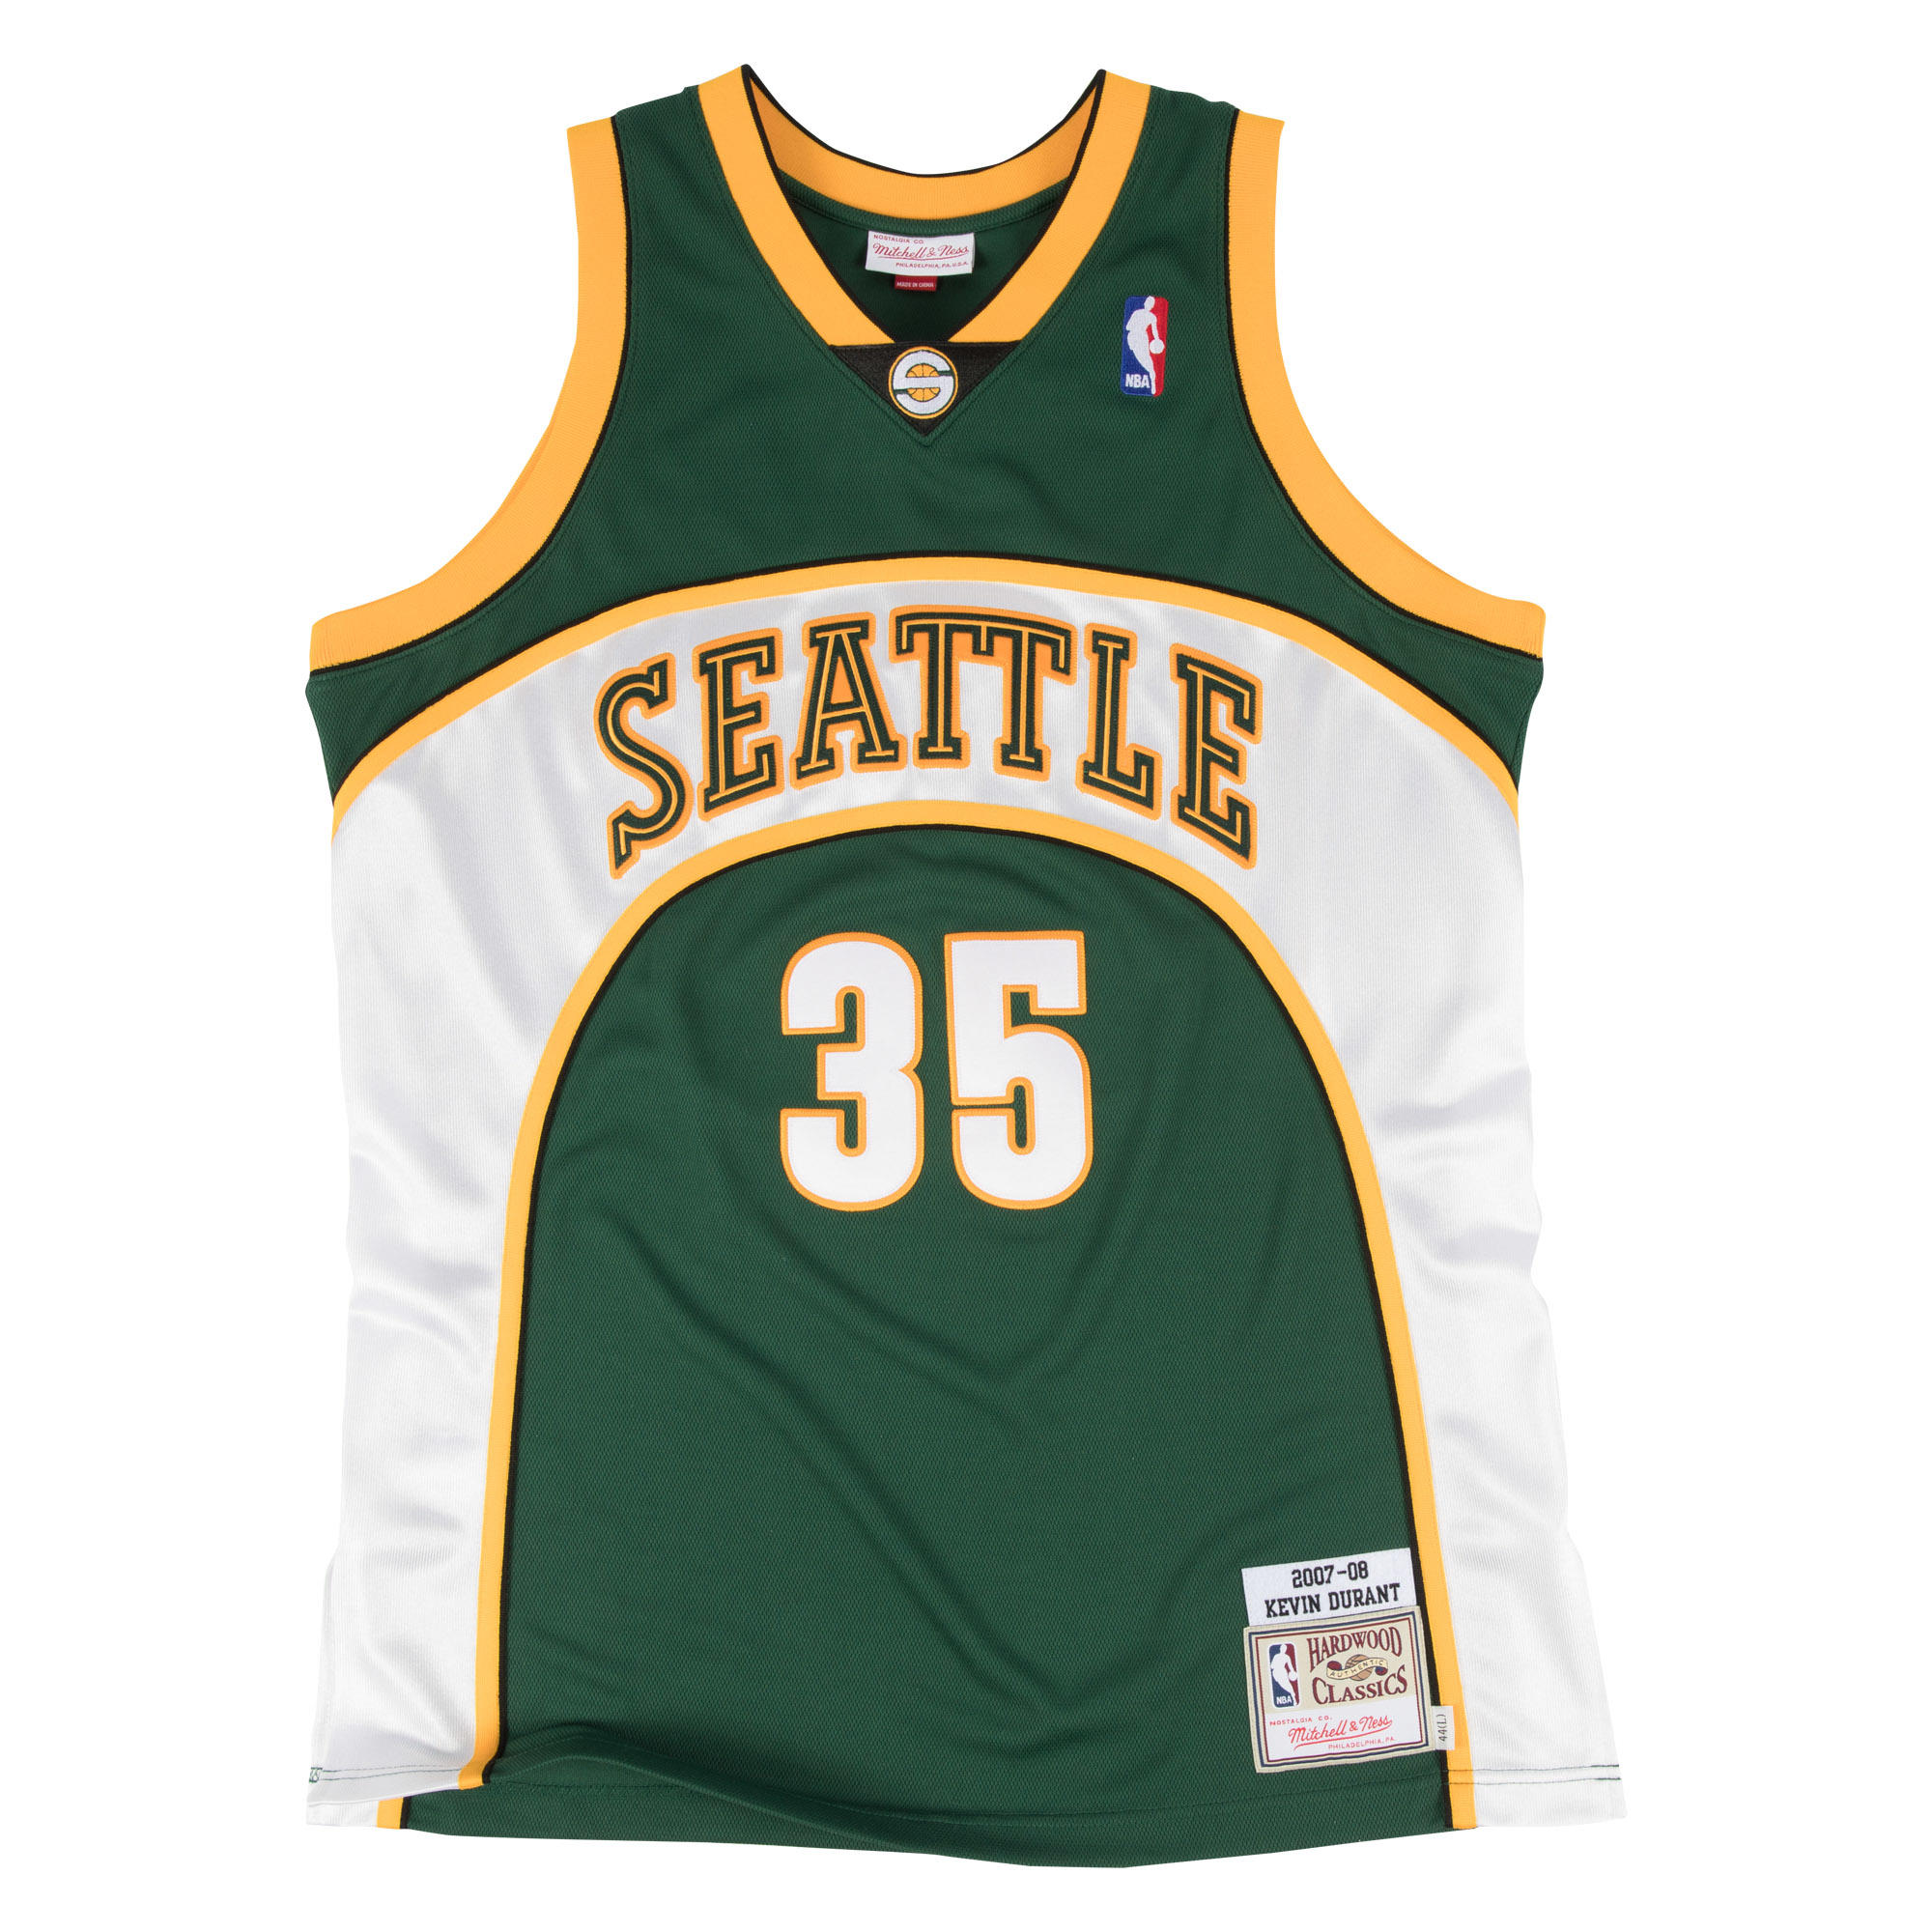 4815ac3a3 ... Durant 2007-08 Authentic Jersey Our Price  £200.00 ...